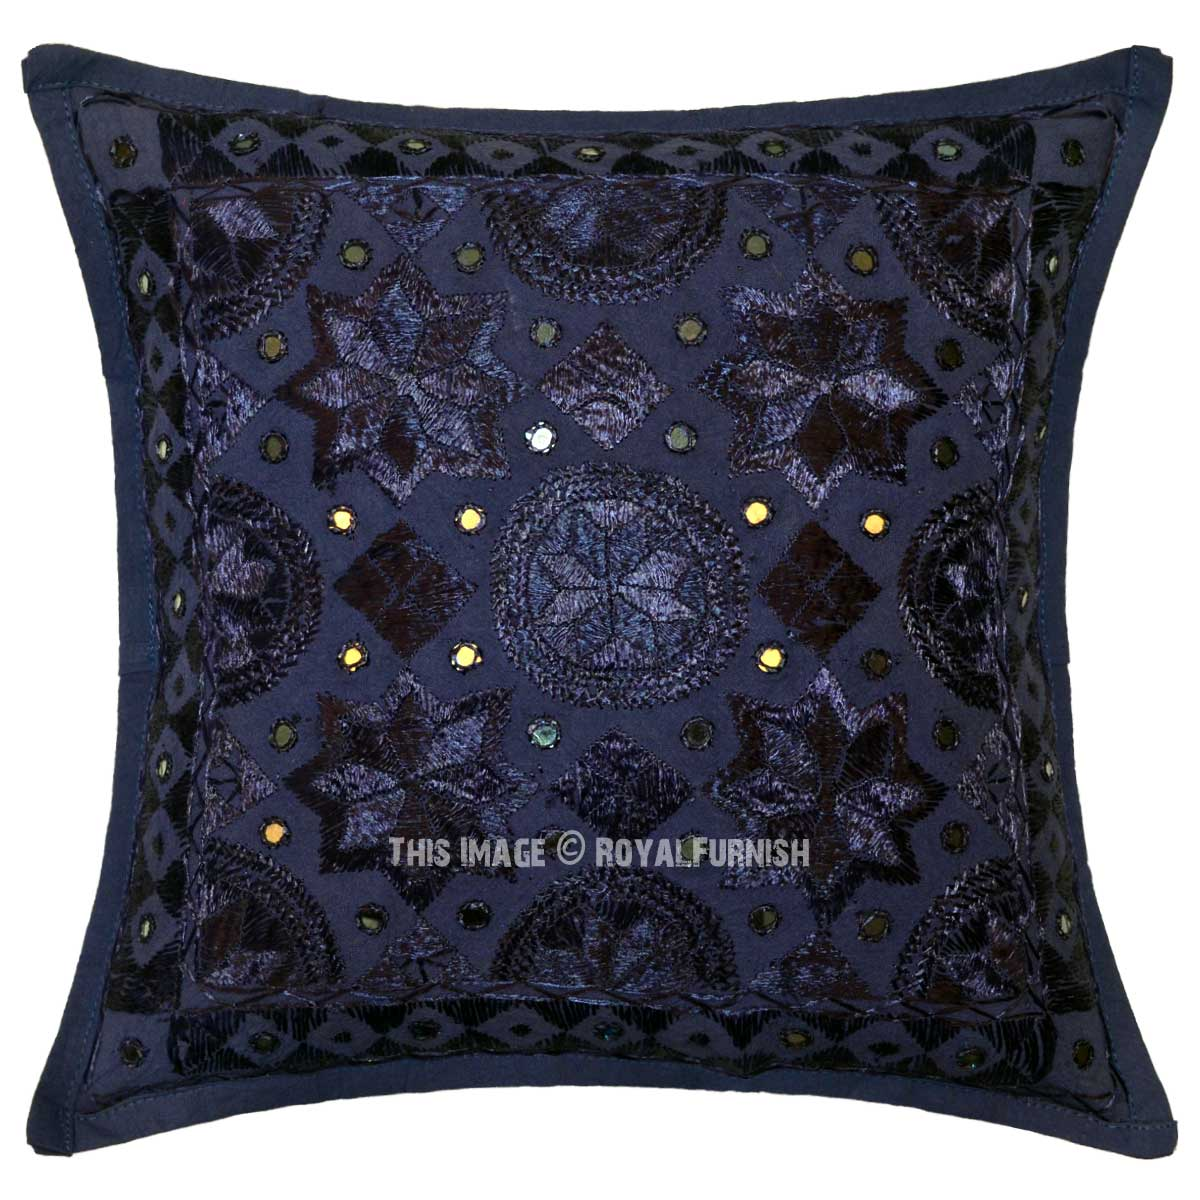 Unique Decorative Accent Pillows : Blue Decorative Star Mirrored Unique Handmade Throw Pillow Case 16X16 - RoyalFurnish.com